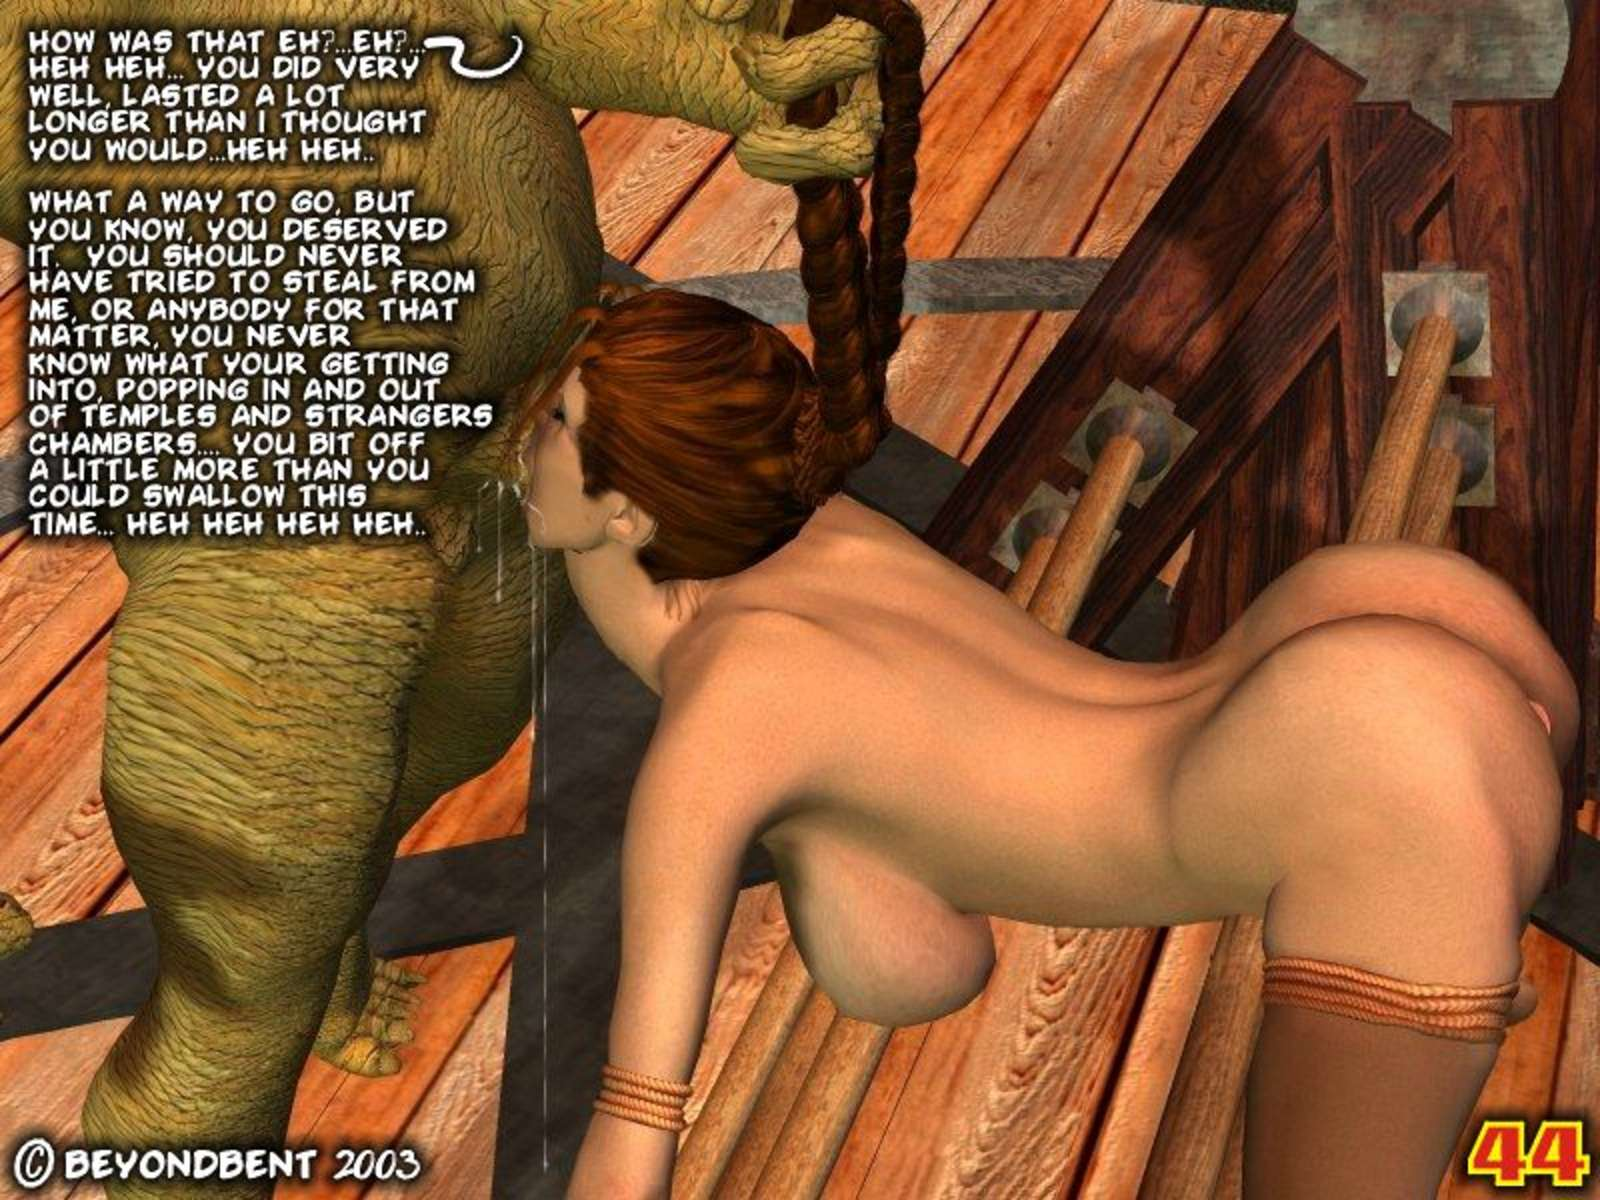 Monster porno laracroft porn photo